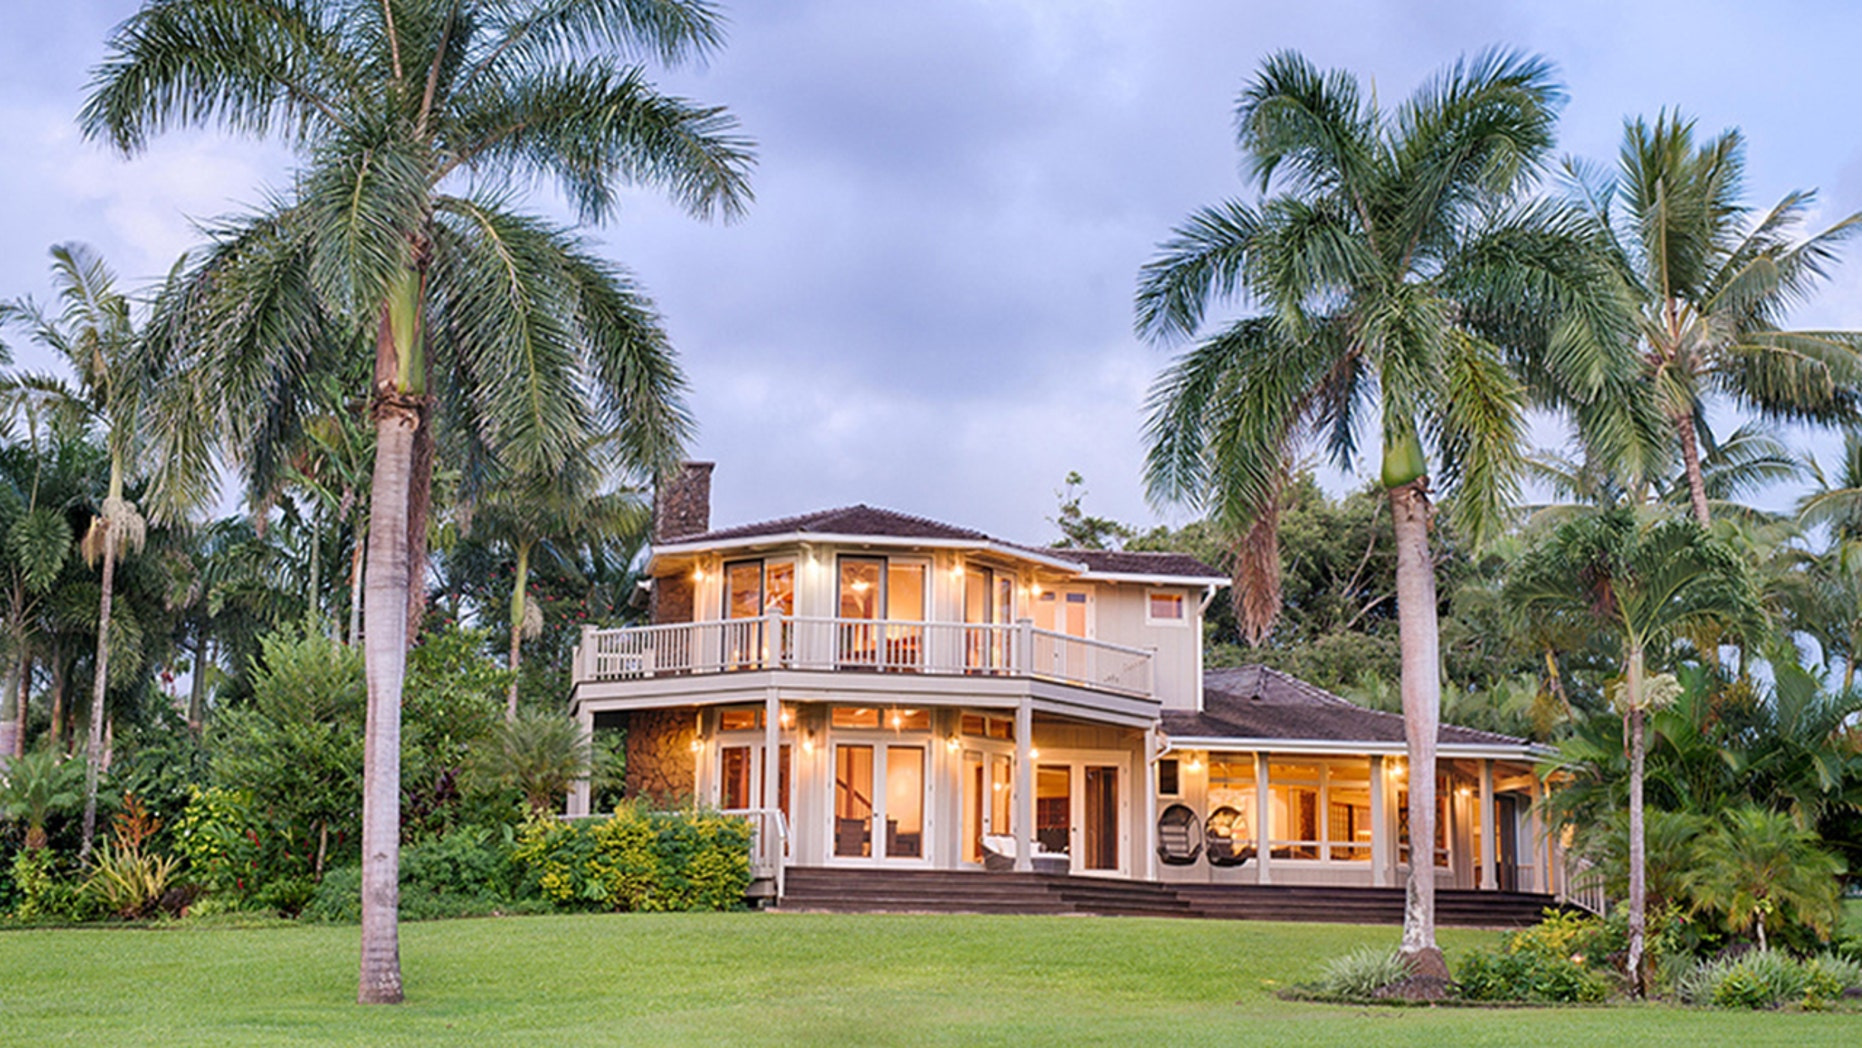 Will Smith and Jada Pinkett-Smith just sold their massive Hawaii home